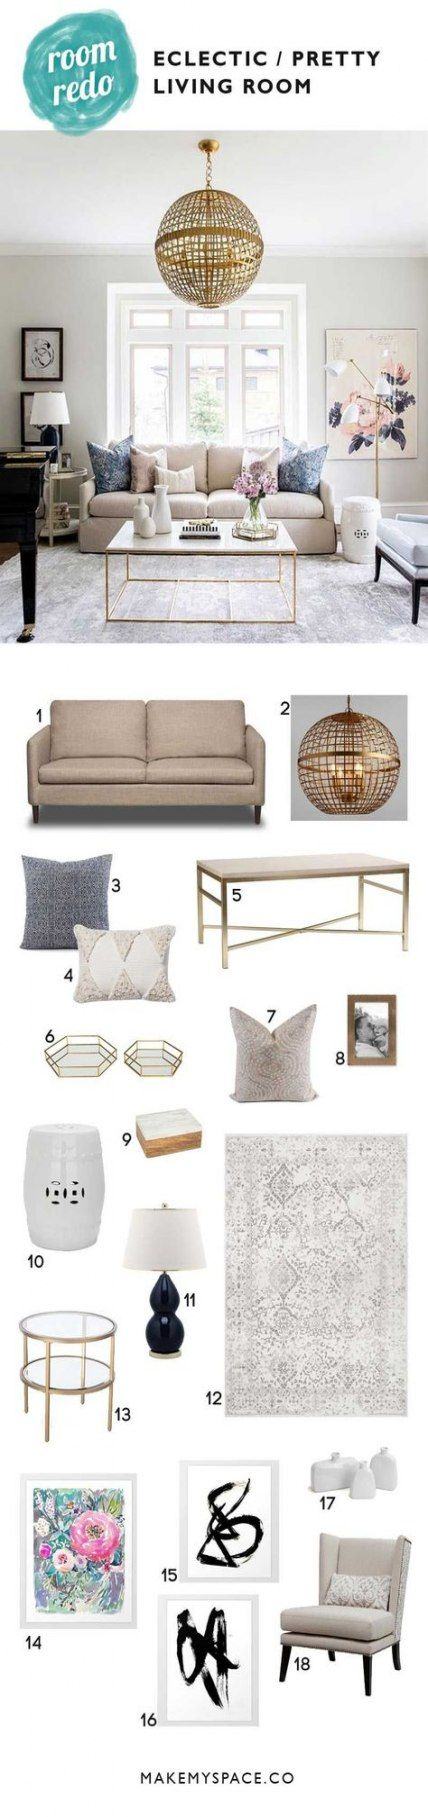 44 Ideas apartment living room decor chic gold